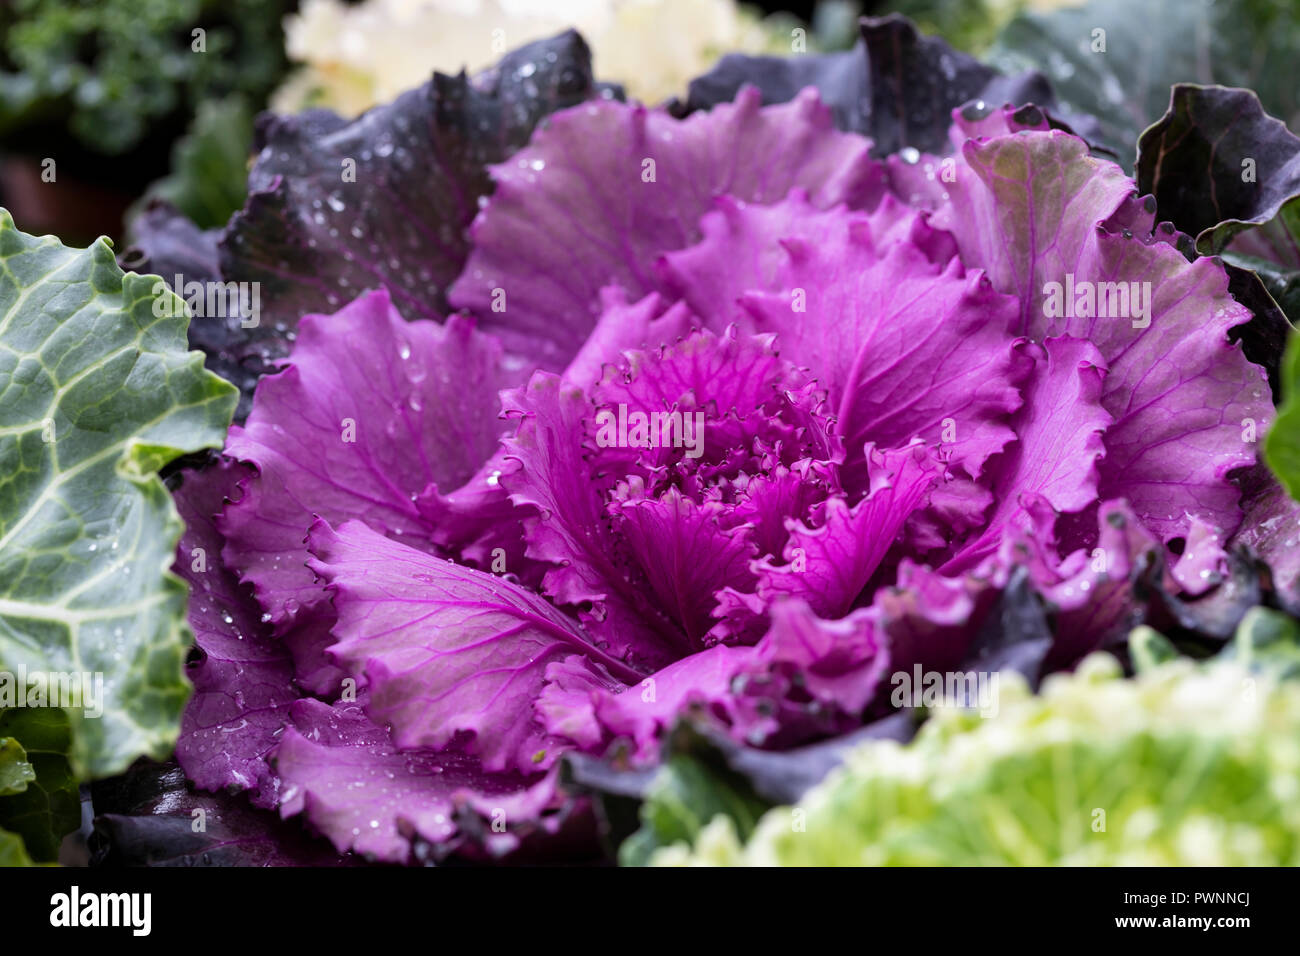 Ornamental Cabbage Winter High Resolution Stock Photography And Images Alamy